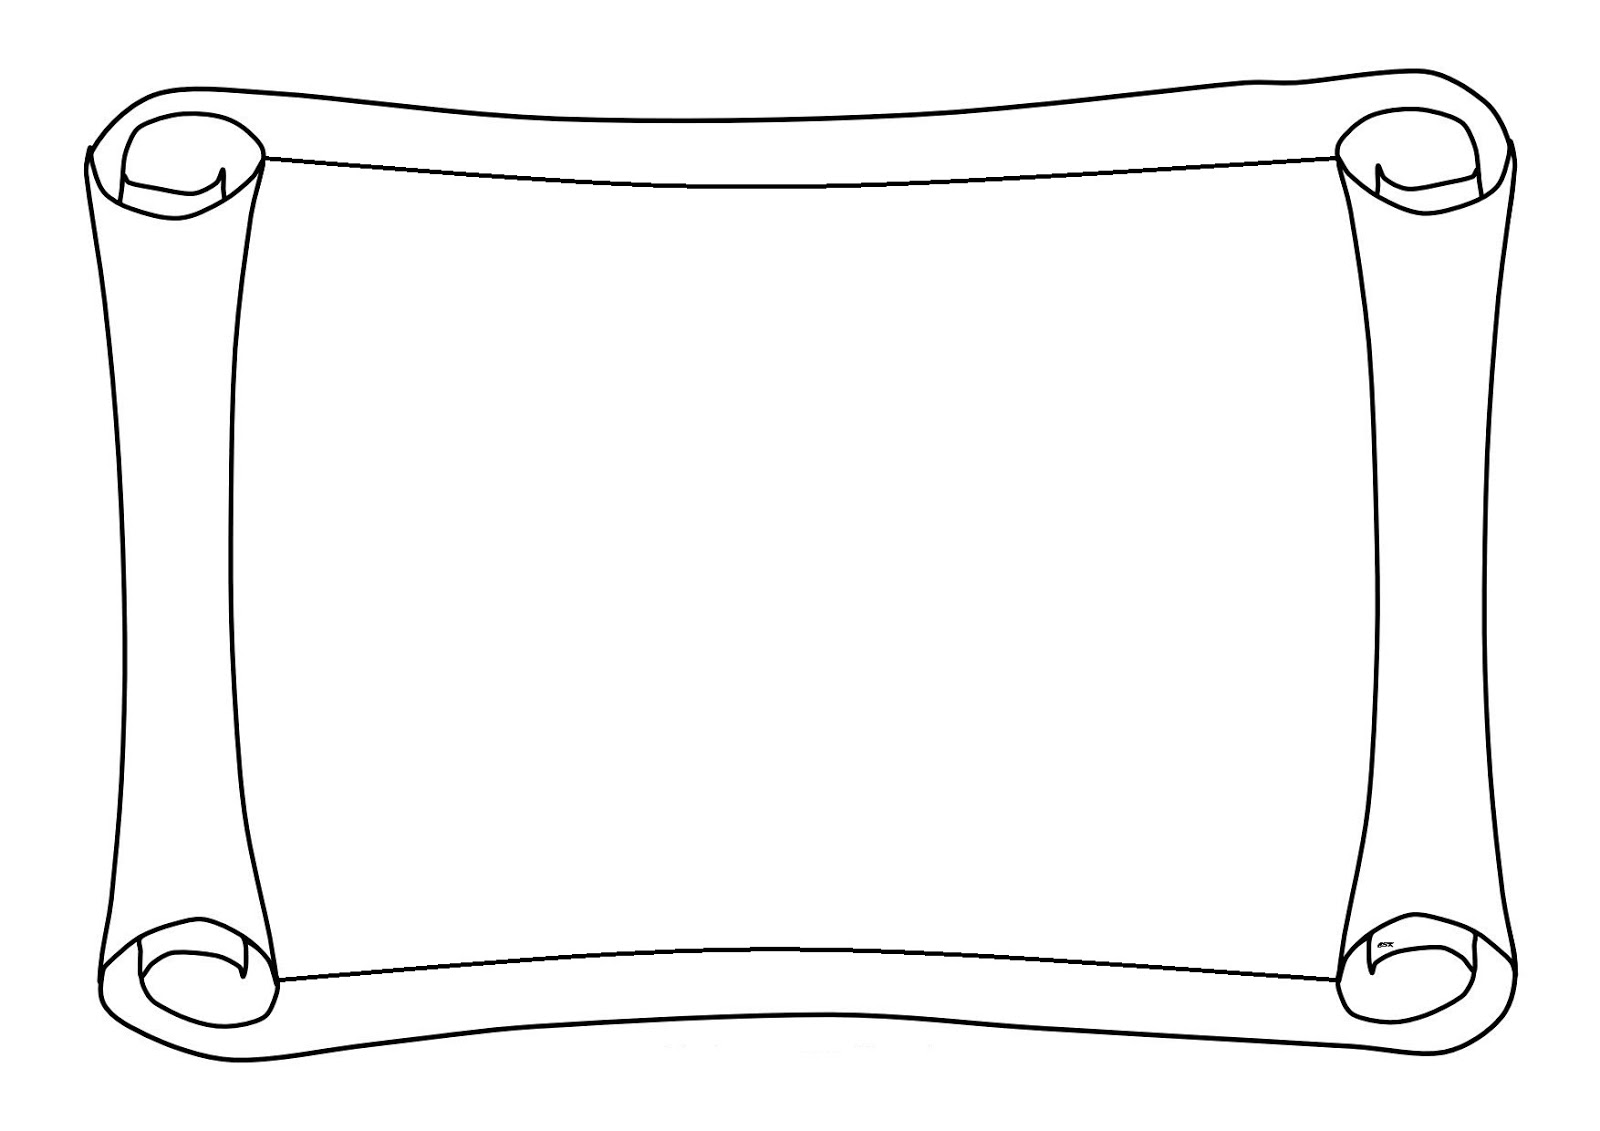 A4 SIZE Simple BORDER DESIGNS FOR PC ASSIGNMENT